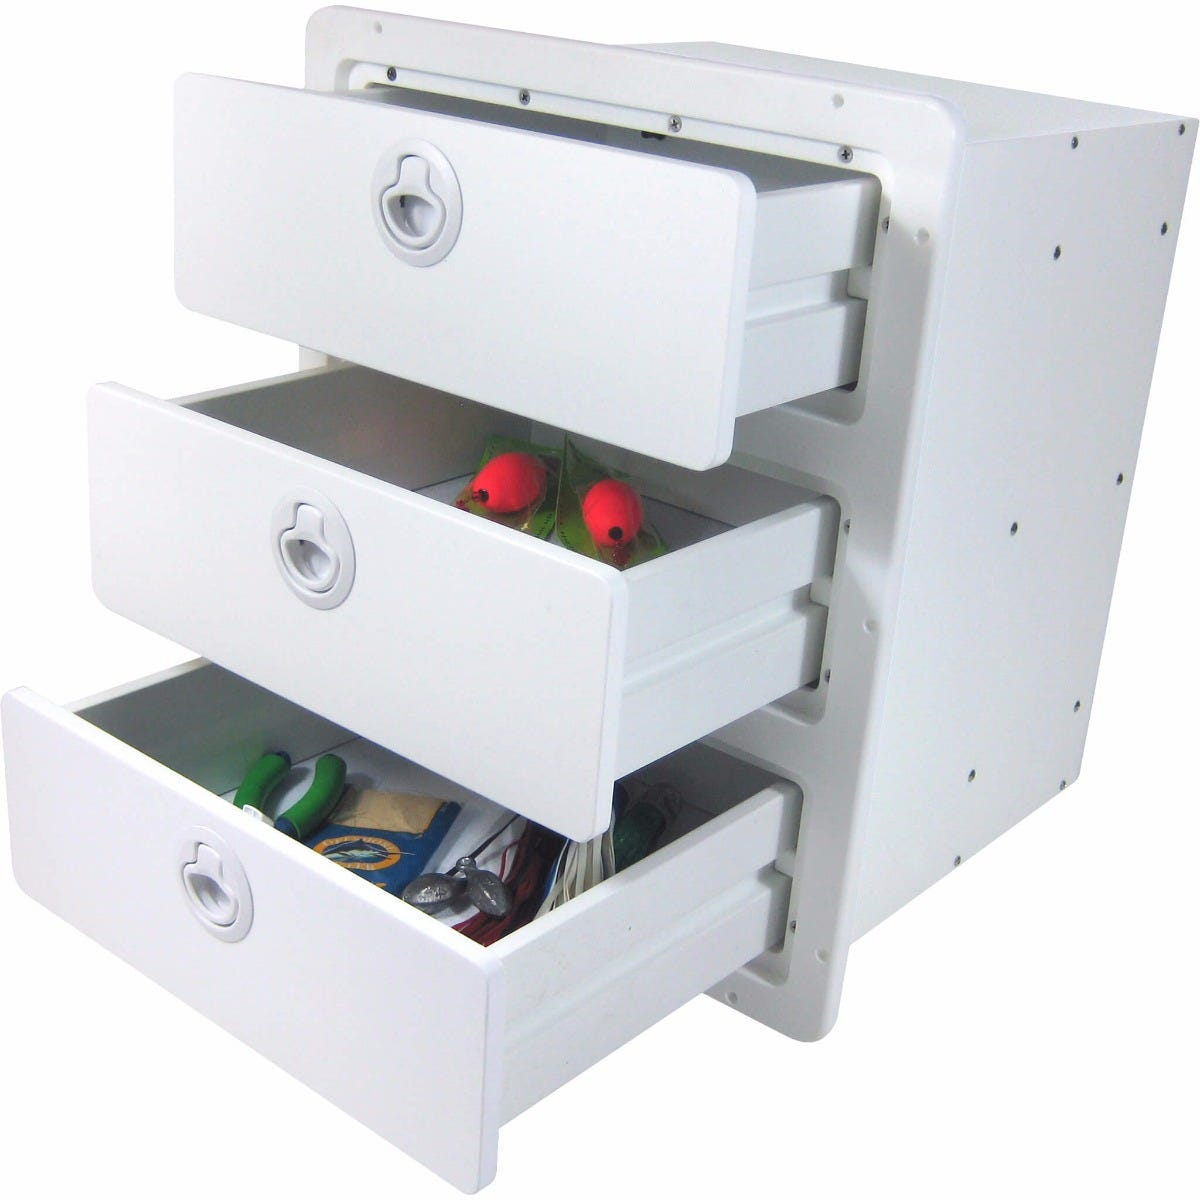 Three Drawer Storage Unit | Boat Outfitters Marine Hardware, Boating  Accessories, Tackle Centers